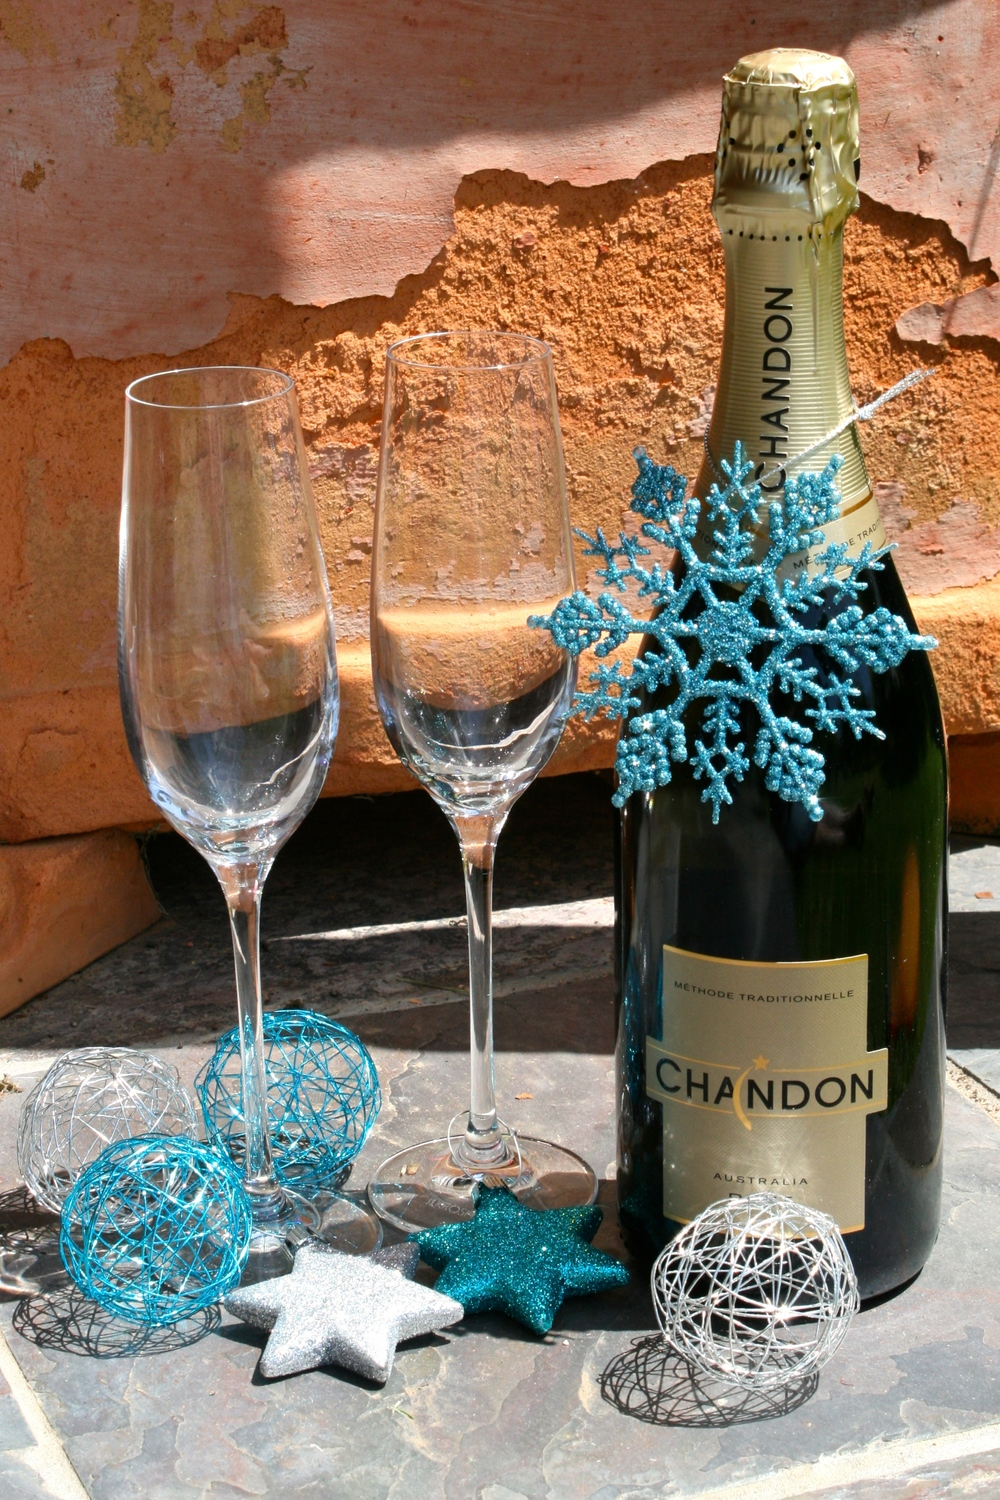 Chandon goes with...